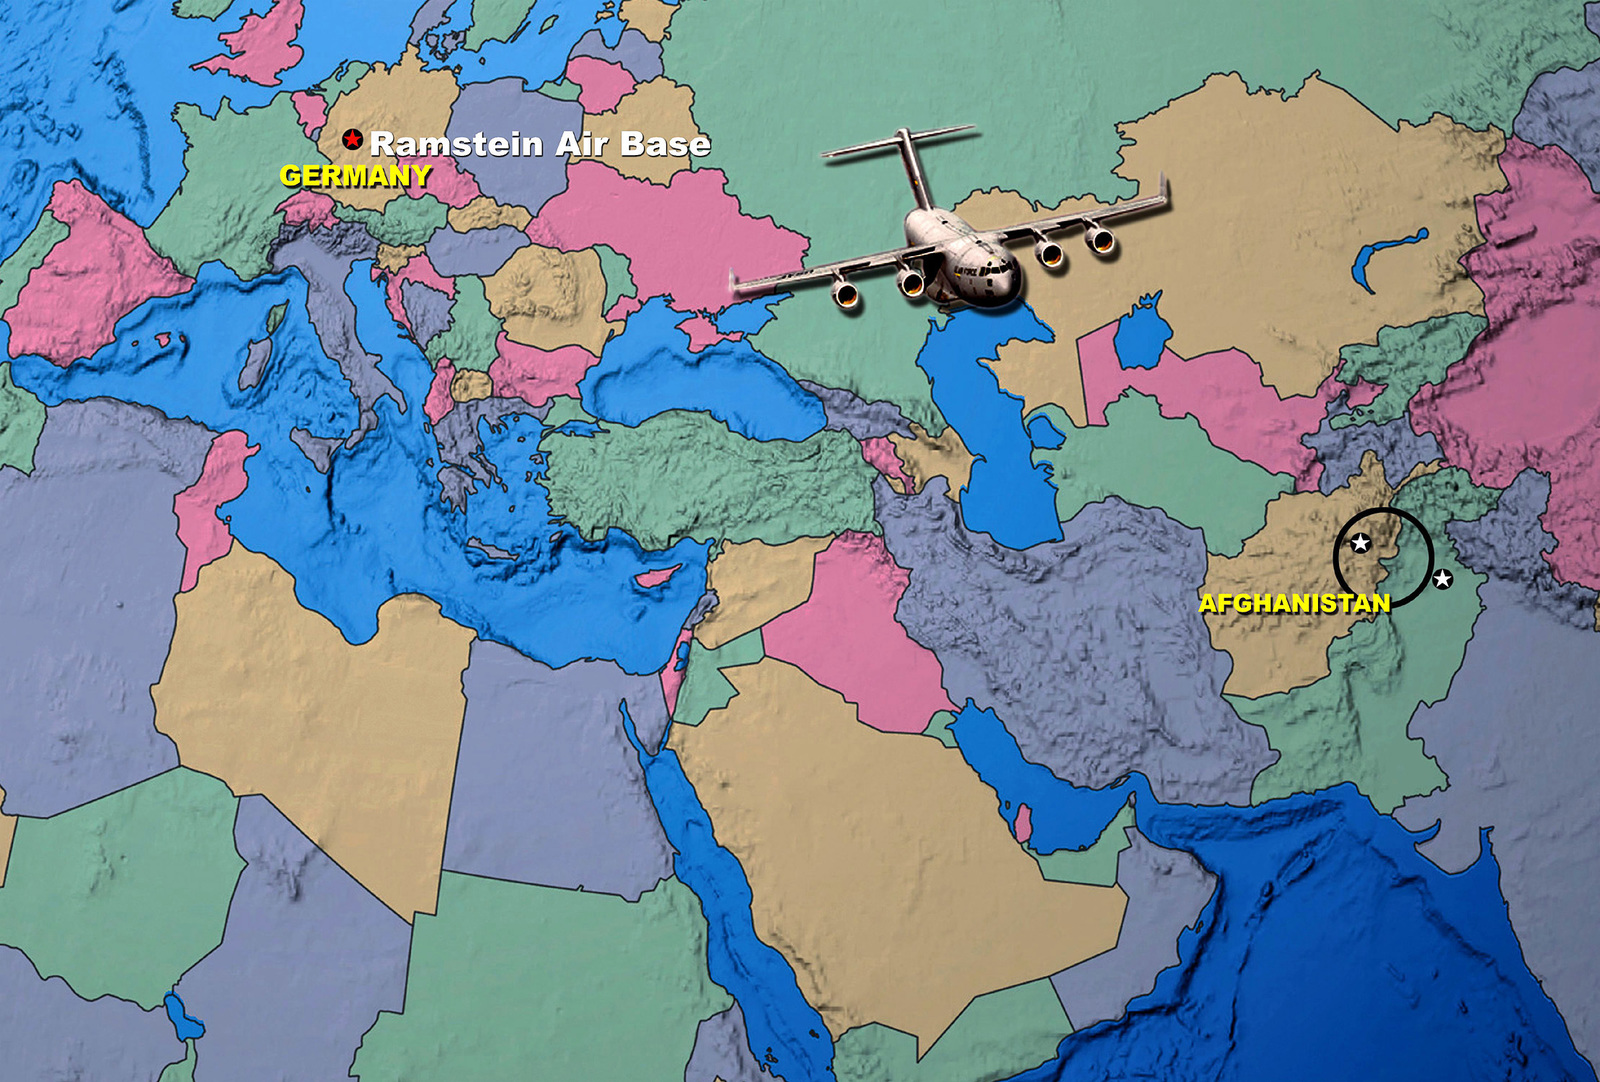 Map Of Germany Ramstein.Overview Map Of Europe And Middle East Outlining The General Area